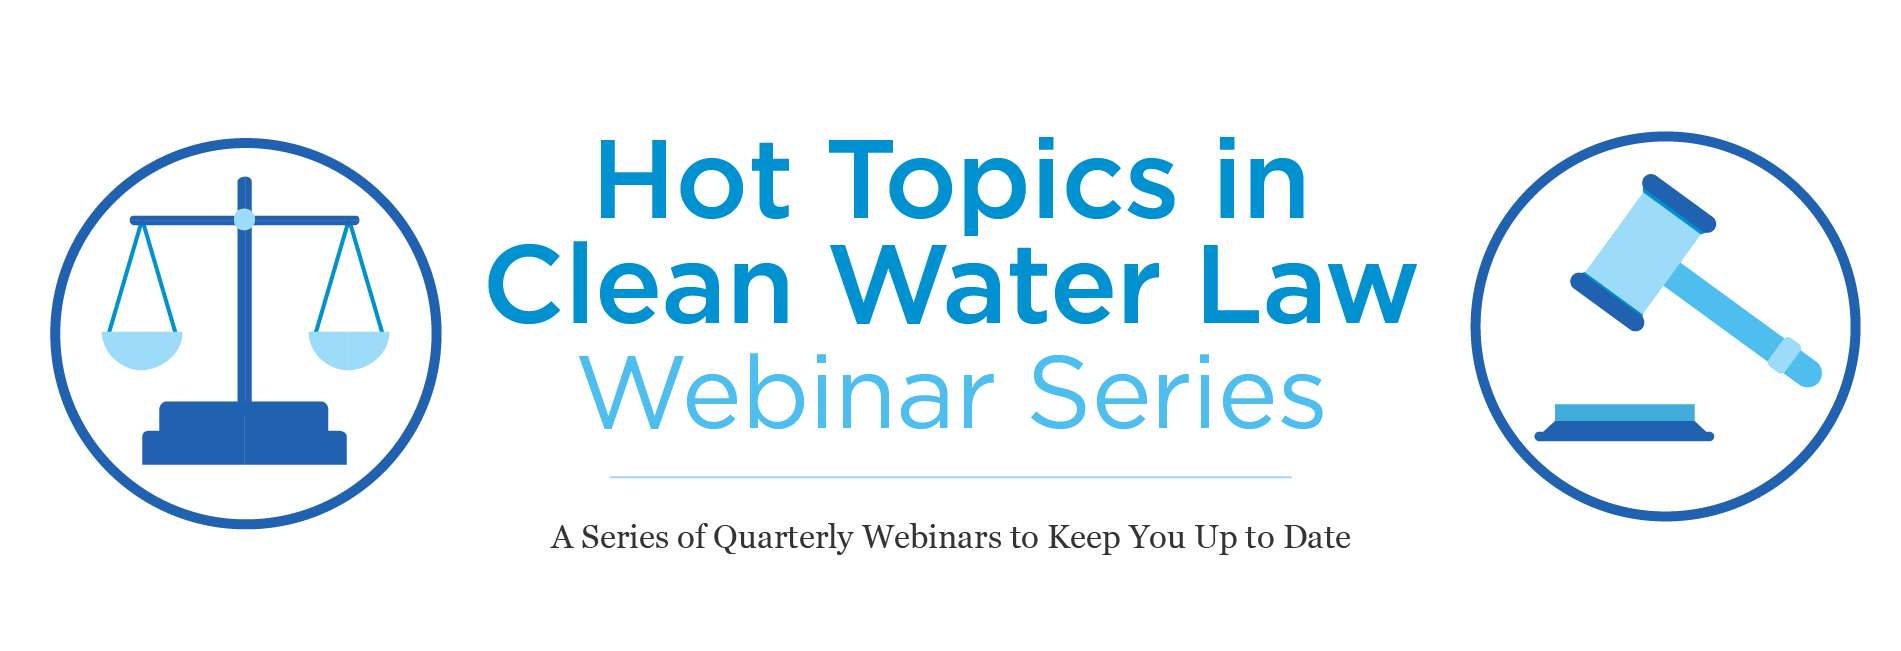 Hot Topics In Clean Water Law Webinar